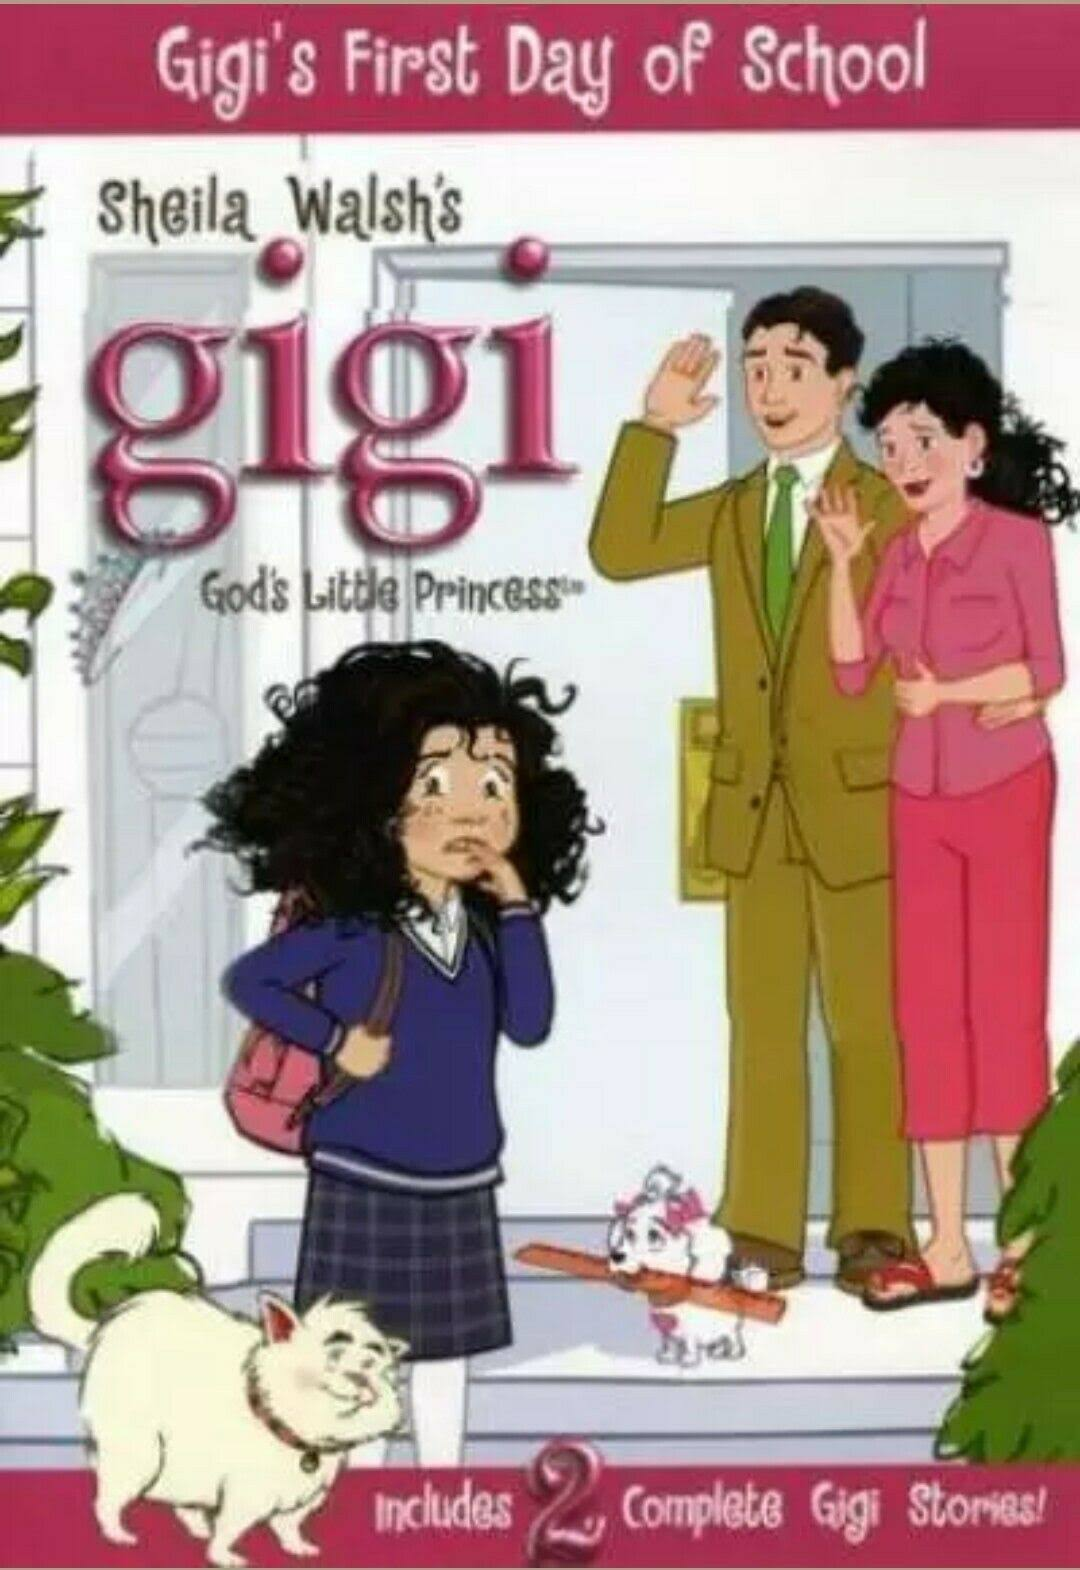 Gigi-gods Little Princess-Gigis First Day of School DVD